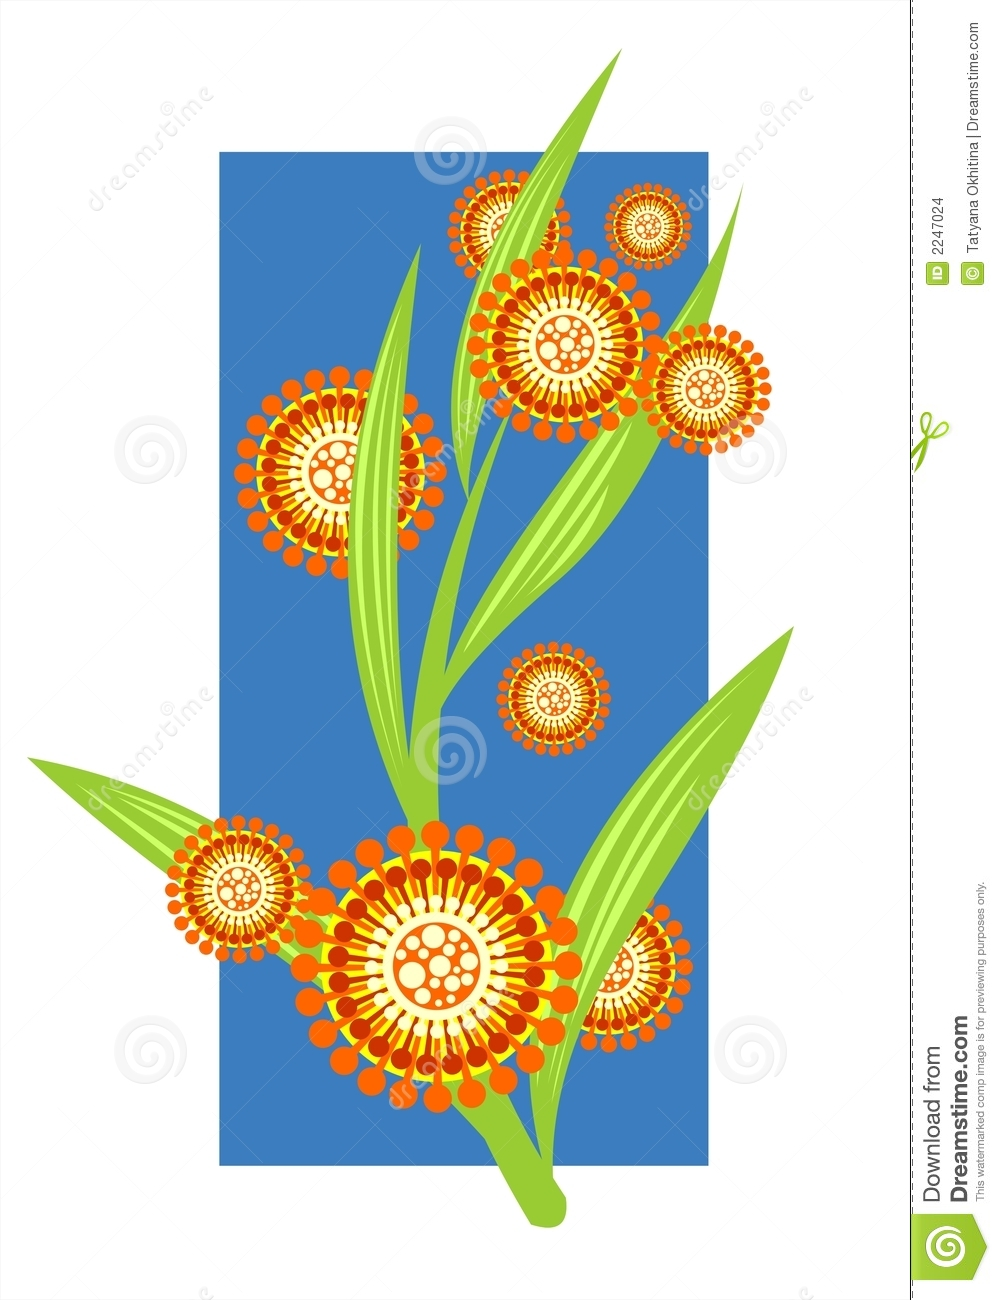 decorative flowers - Decorative Flowers